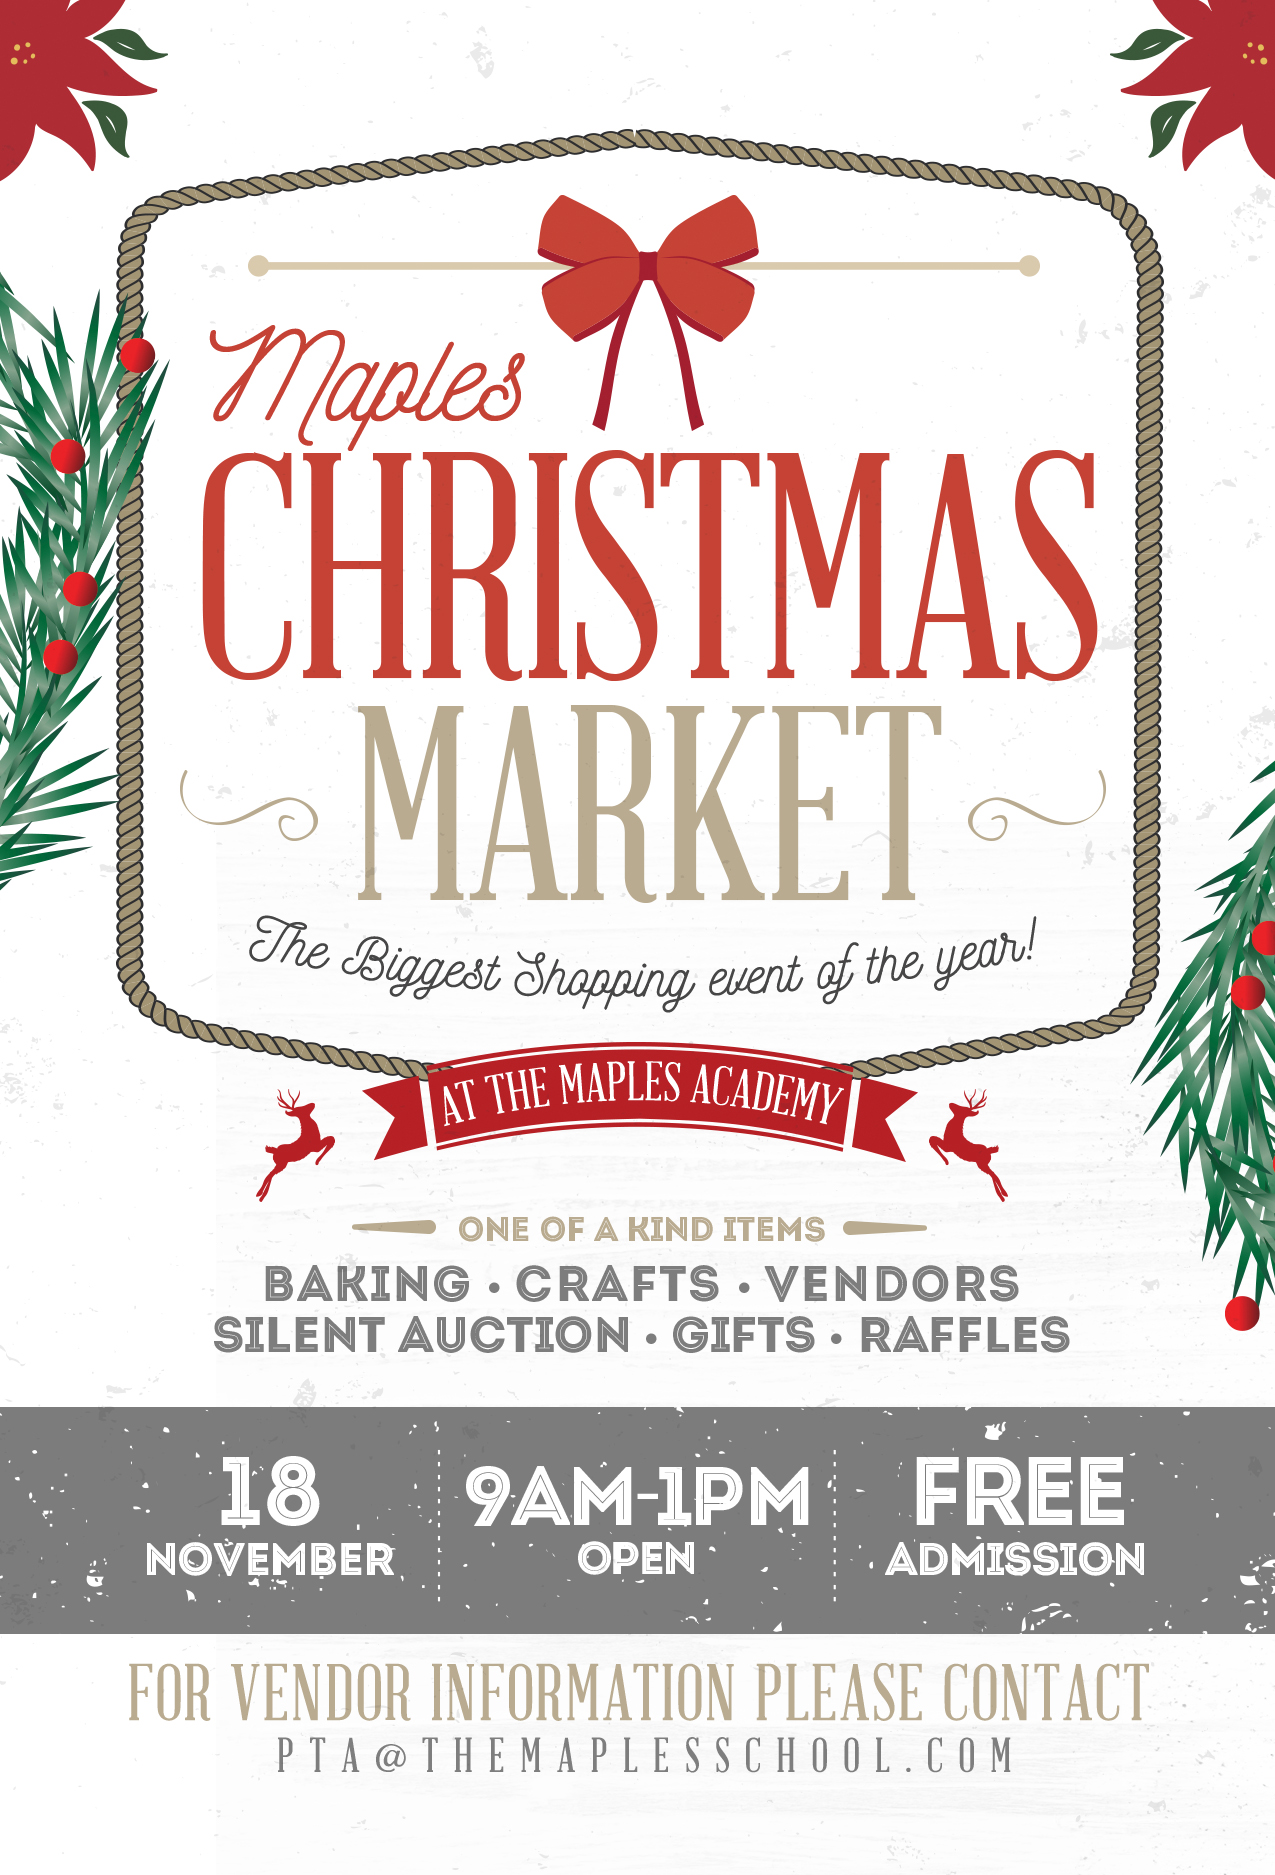 Maples Christmas Market In The Hills